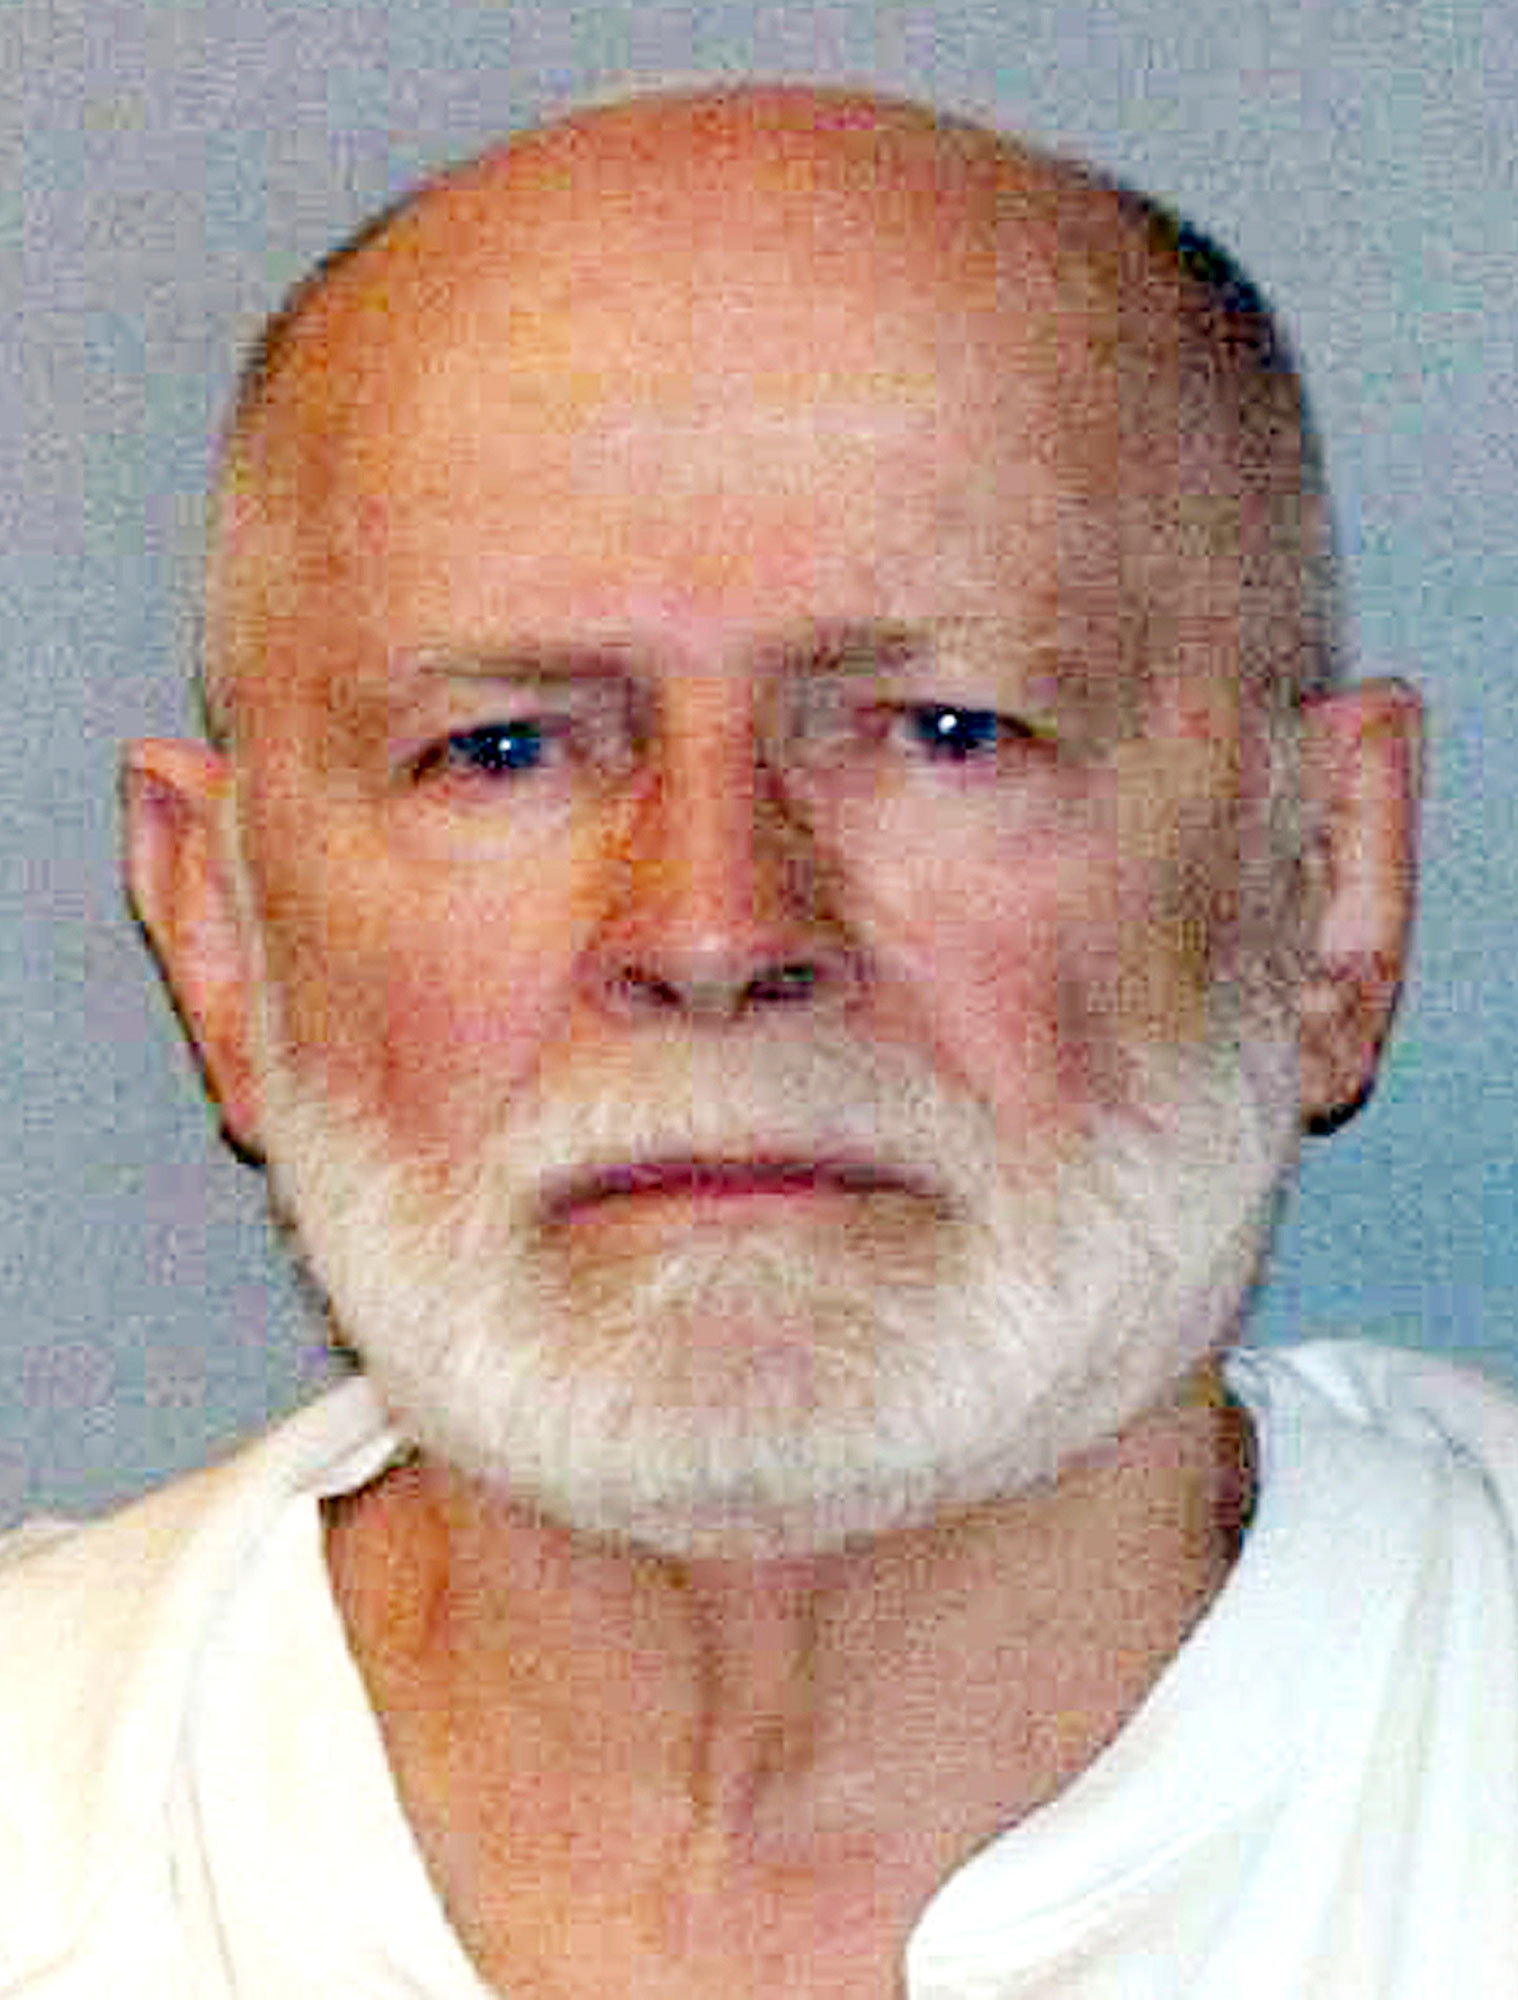 "<div class=""meta image-caption""><div class=""origin-logo origin-image none""><span>none</span></div><span class=""caption-text"">Boston gangster James ""Whitey"" Bulger, one of the FBI's most wanted criminals for 16 years until his 2011 arrest, died at age 89 in prison, the Department of Justice confirmed. (U.S. Marshals Service via AP)</span></div>"